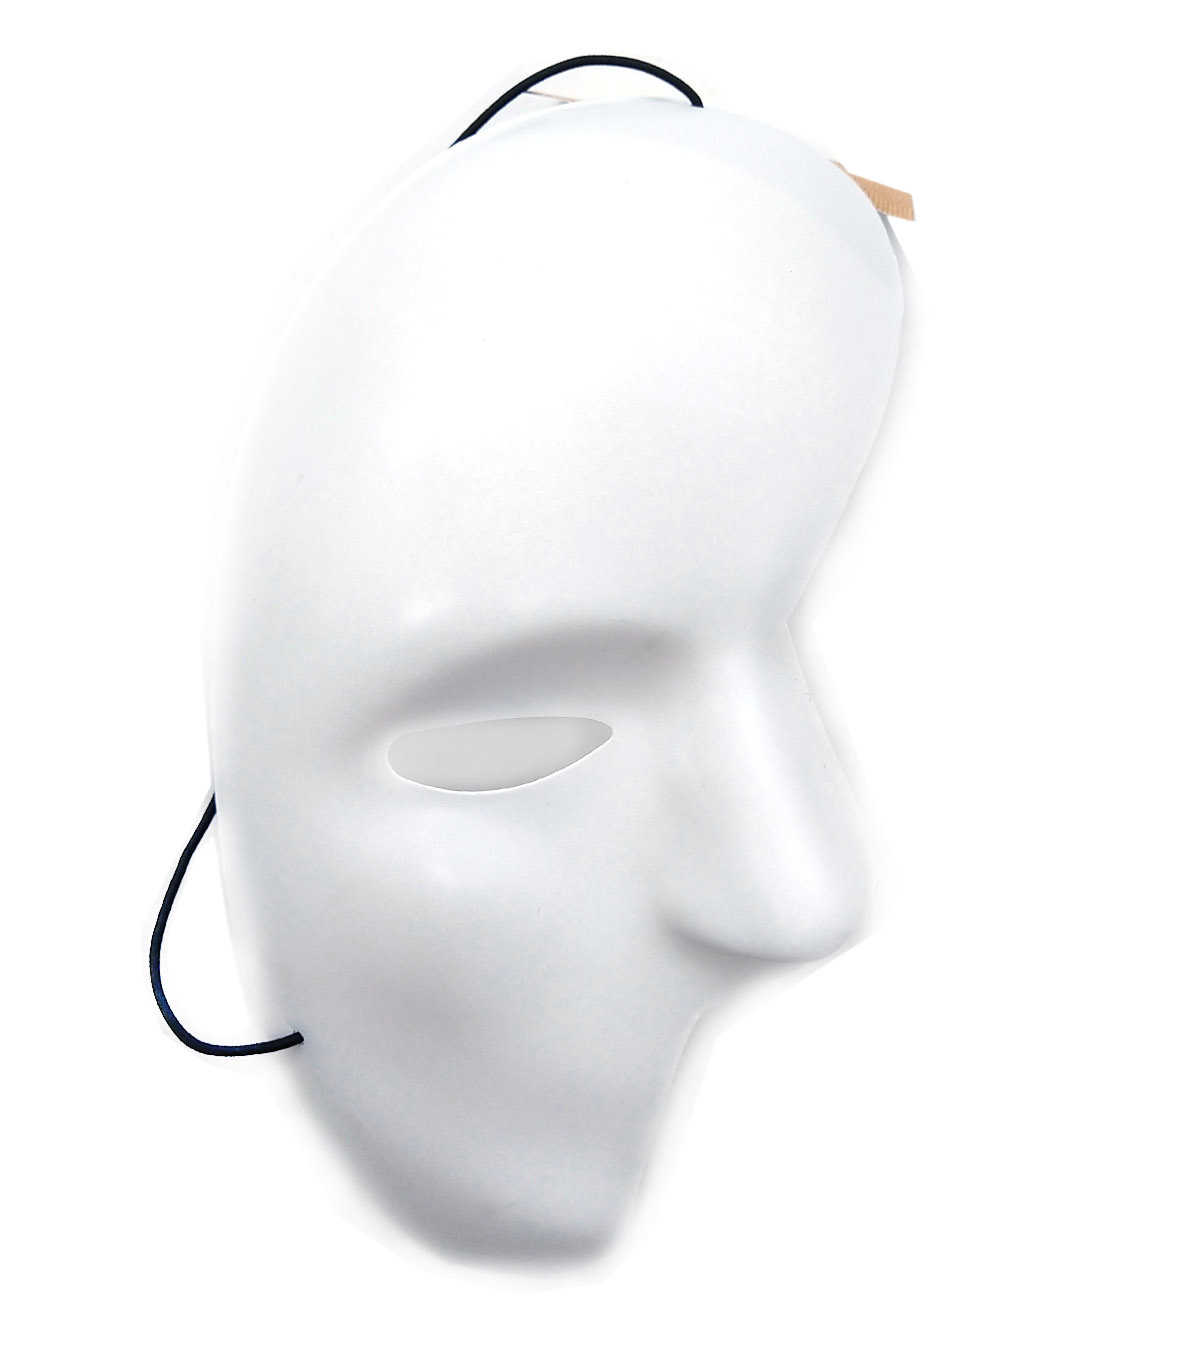 Mask-It™ Half Face 4.5\u0022x8.25\u0022 (11.4 x 21 cm) White with black elastic cord, FREE Color Instruction Sheet, 1 piece